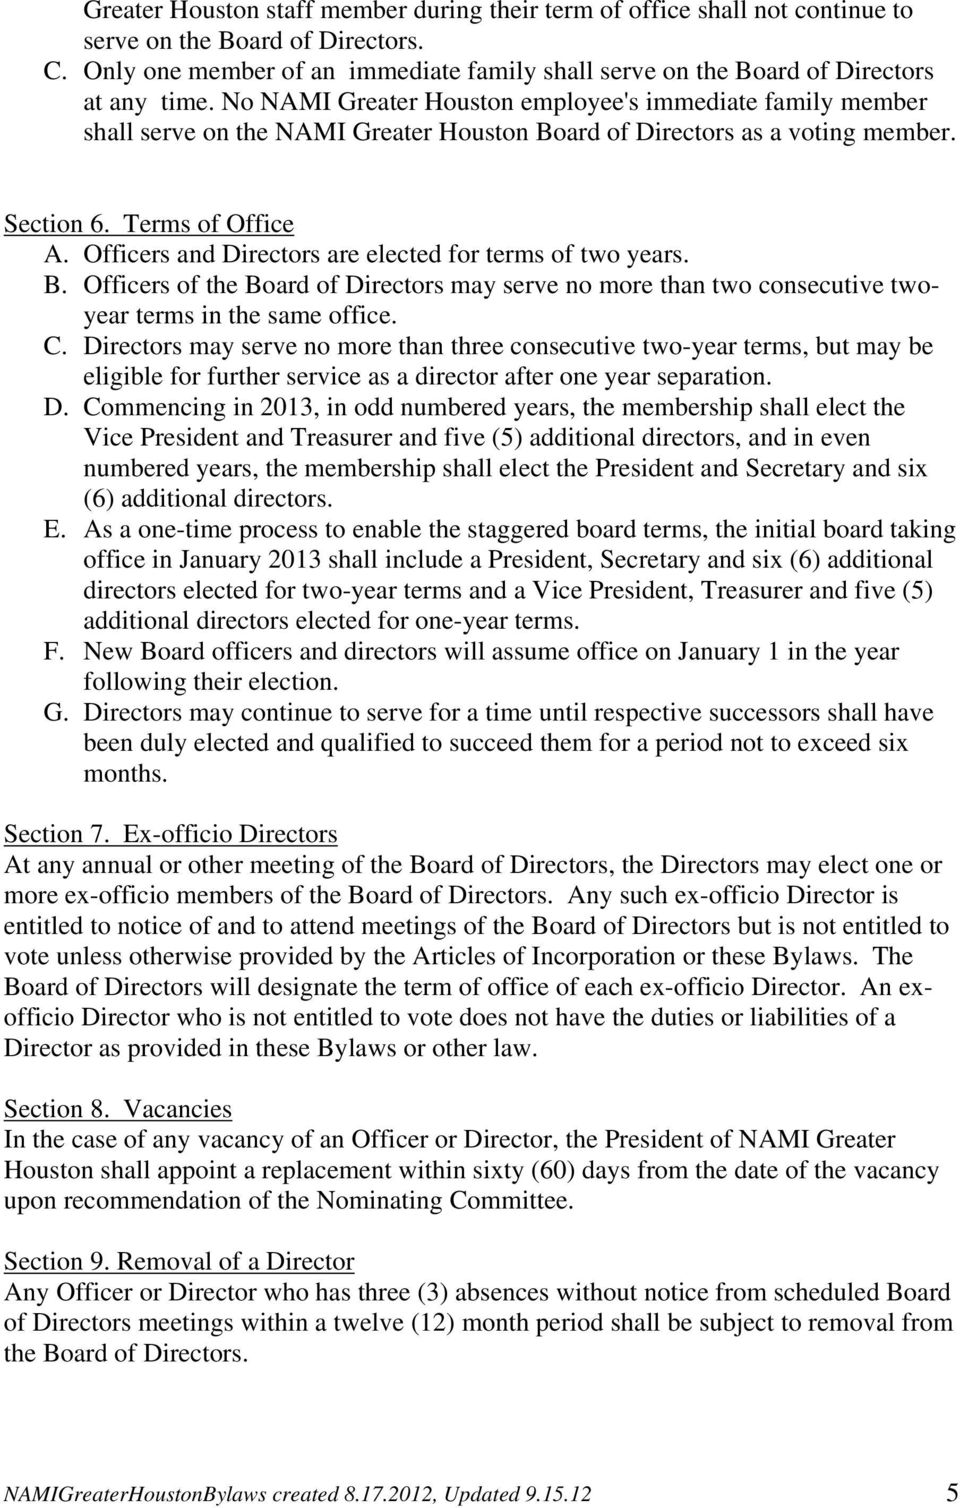 No NAMI Greater Houston employee's immediate family member shall serve on the NAMI Greater Houston Board of Directors as a voting member. Section 6. Terms of Office A.